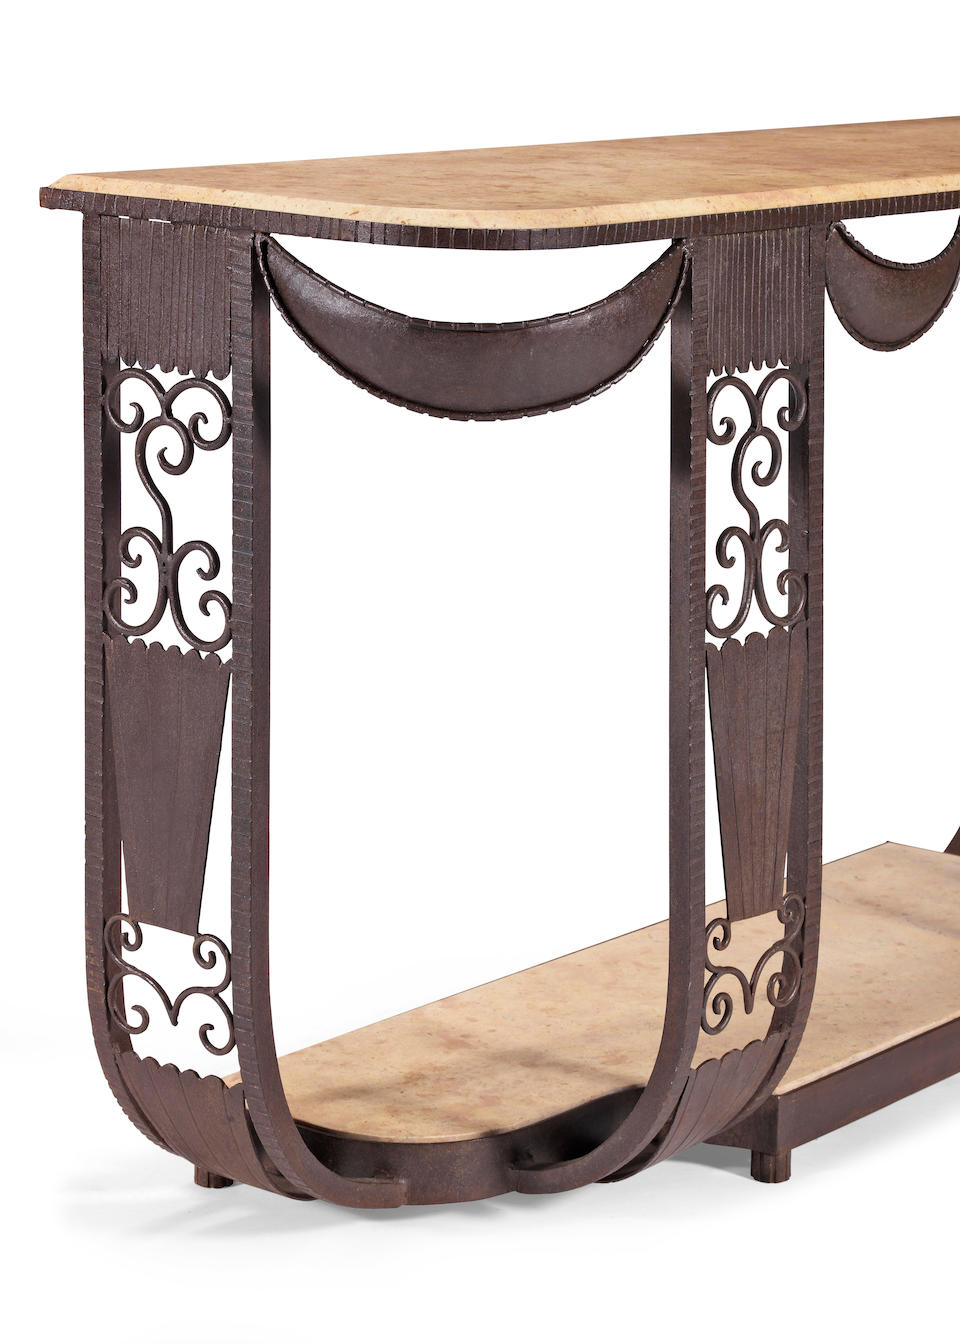 Edgar Brandt (French, 1880-1960), In the Style of Console Table, circa 1930